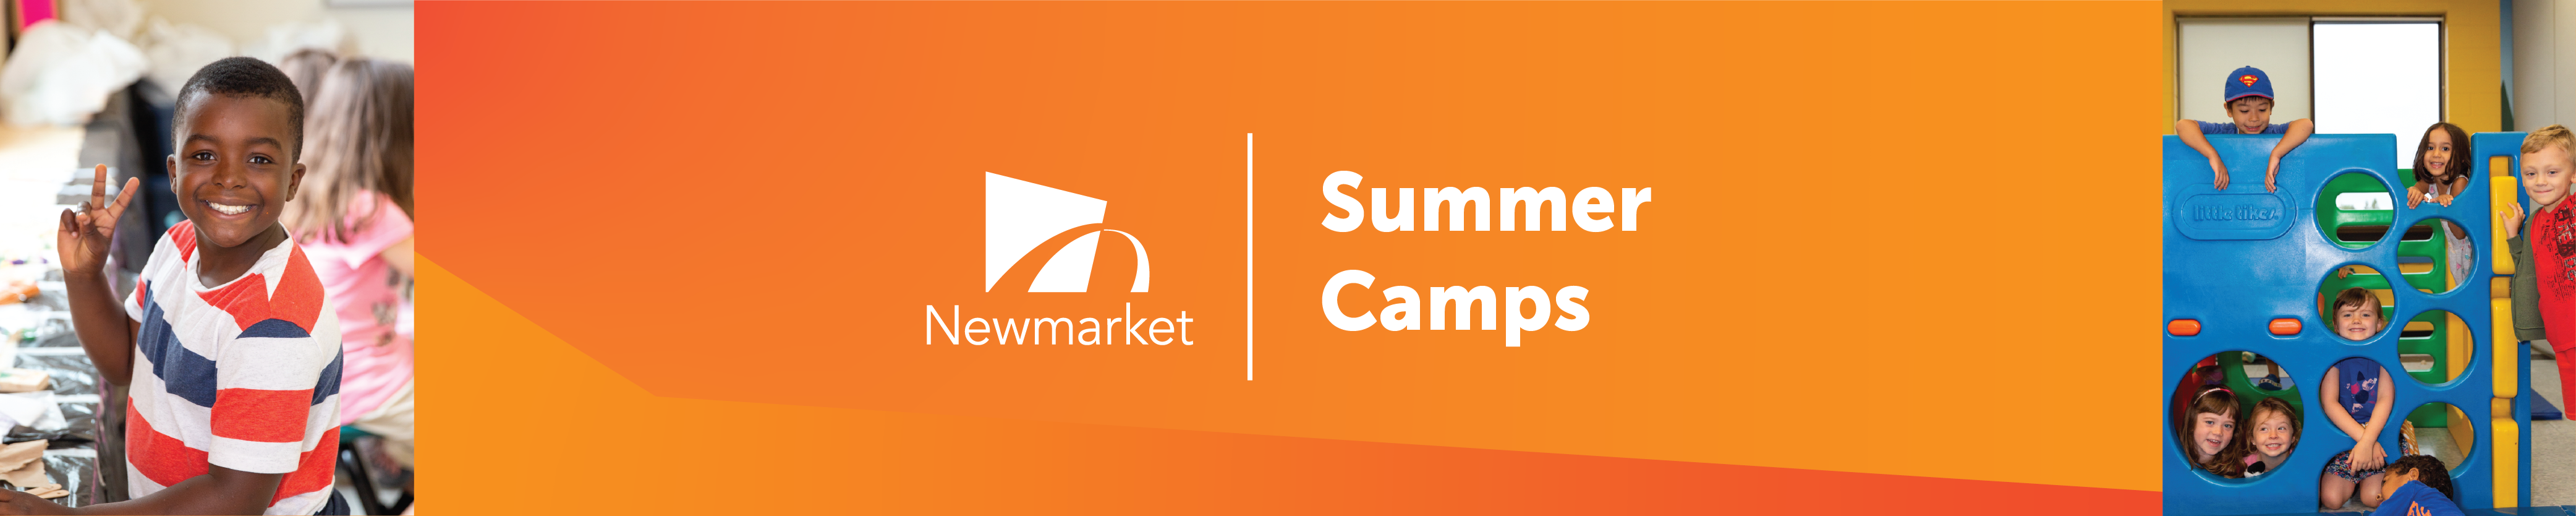 SummerCampsBanner-01.png